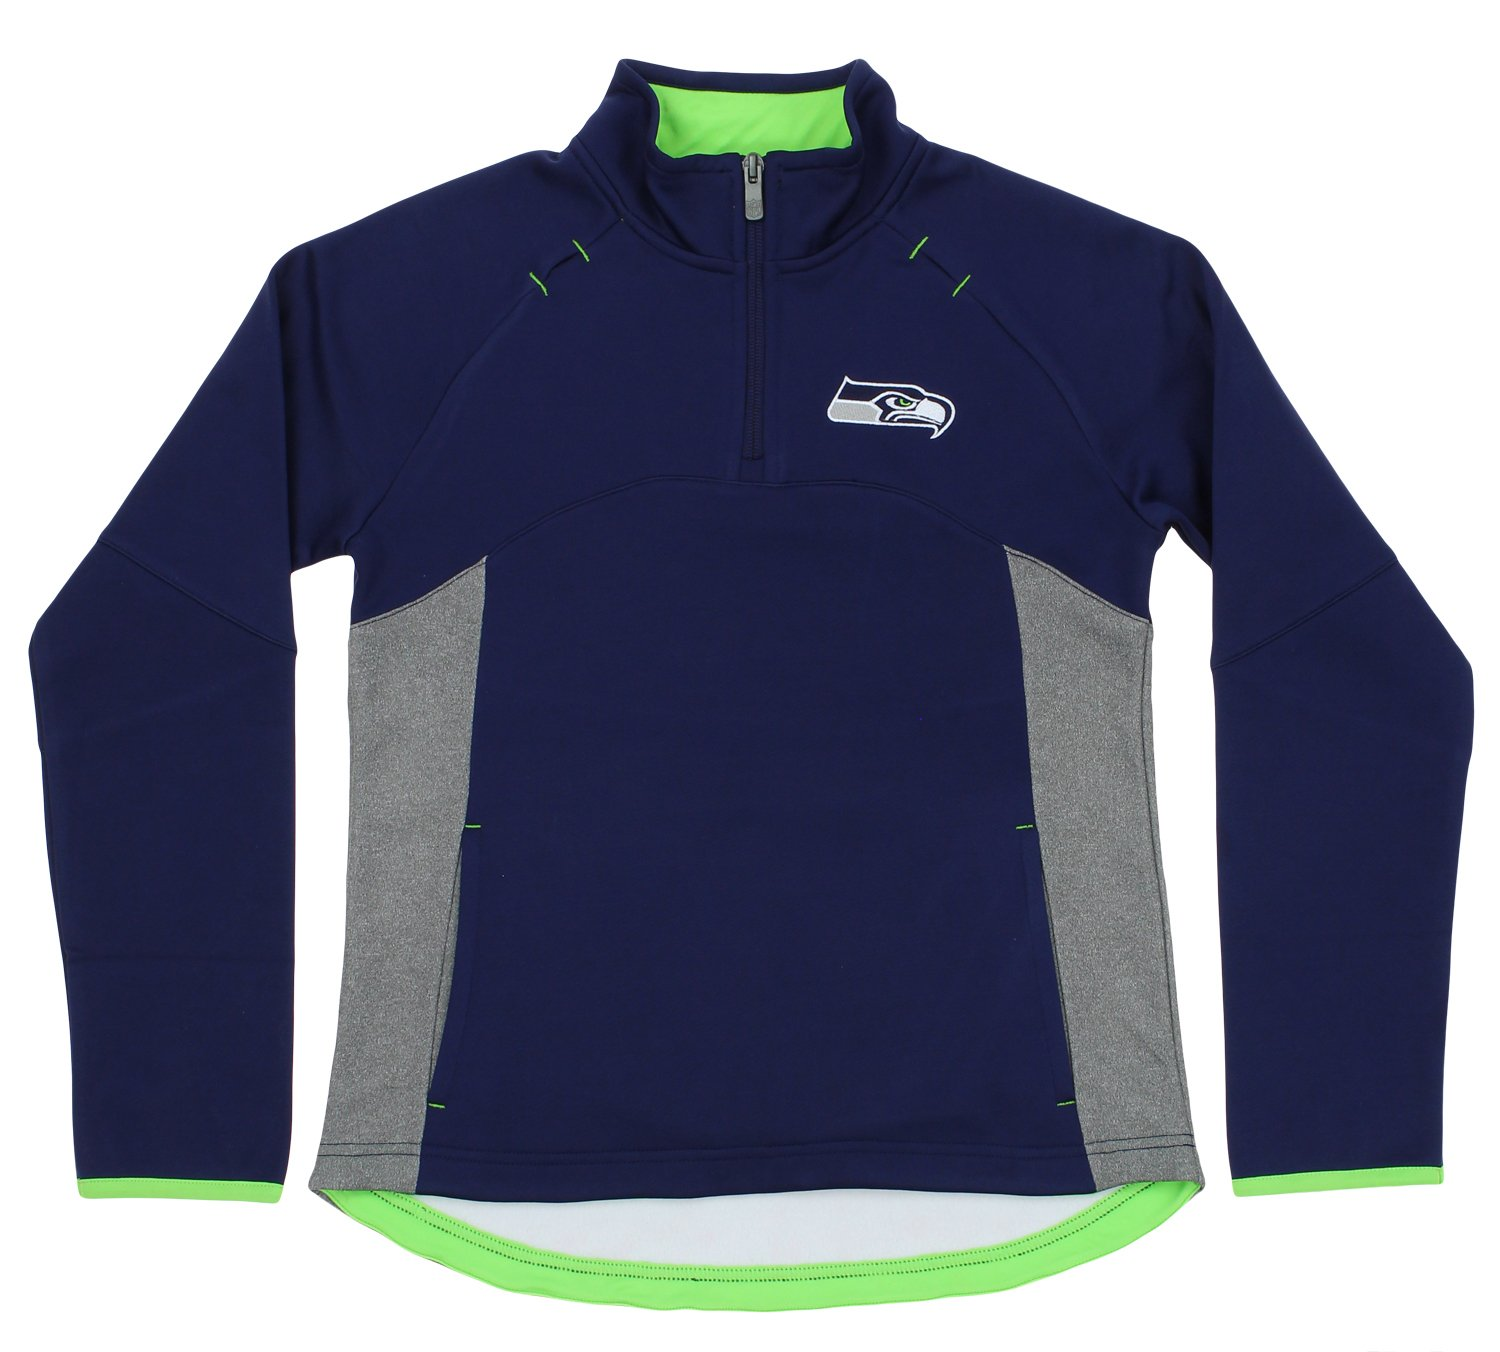 Outerstuff Seattle Seahawks NFL Big Girls Youth Extreme Long Sleeve 1/4 Zip Top, Navy-Grey by Outerstuff